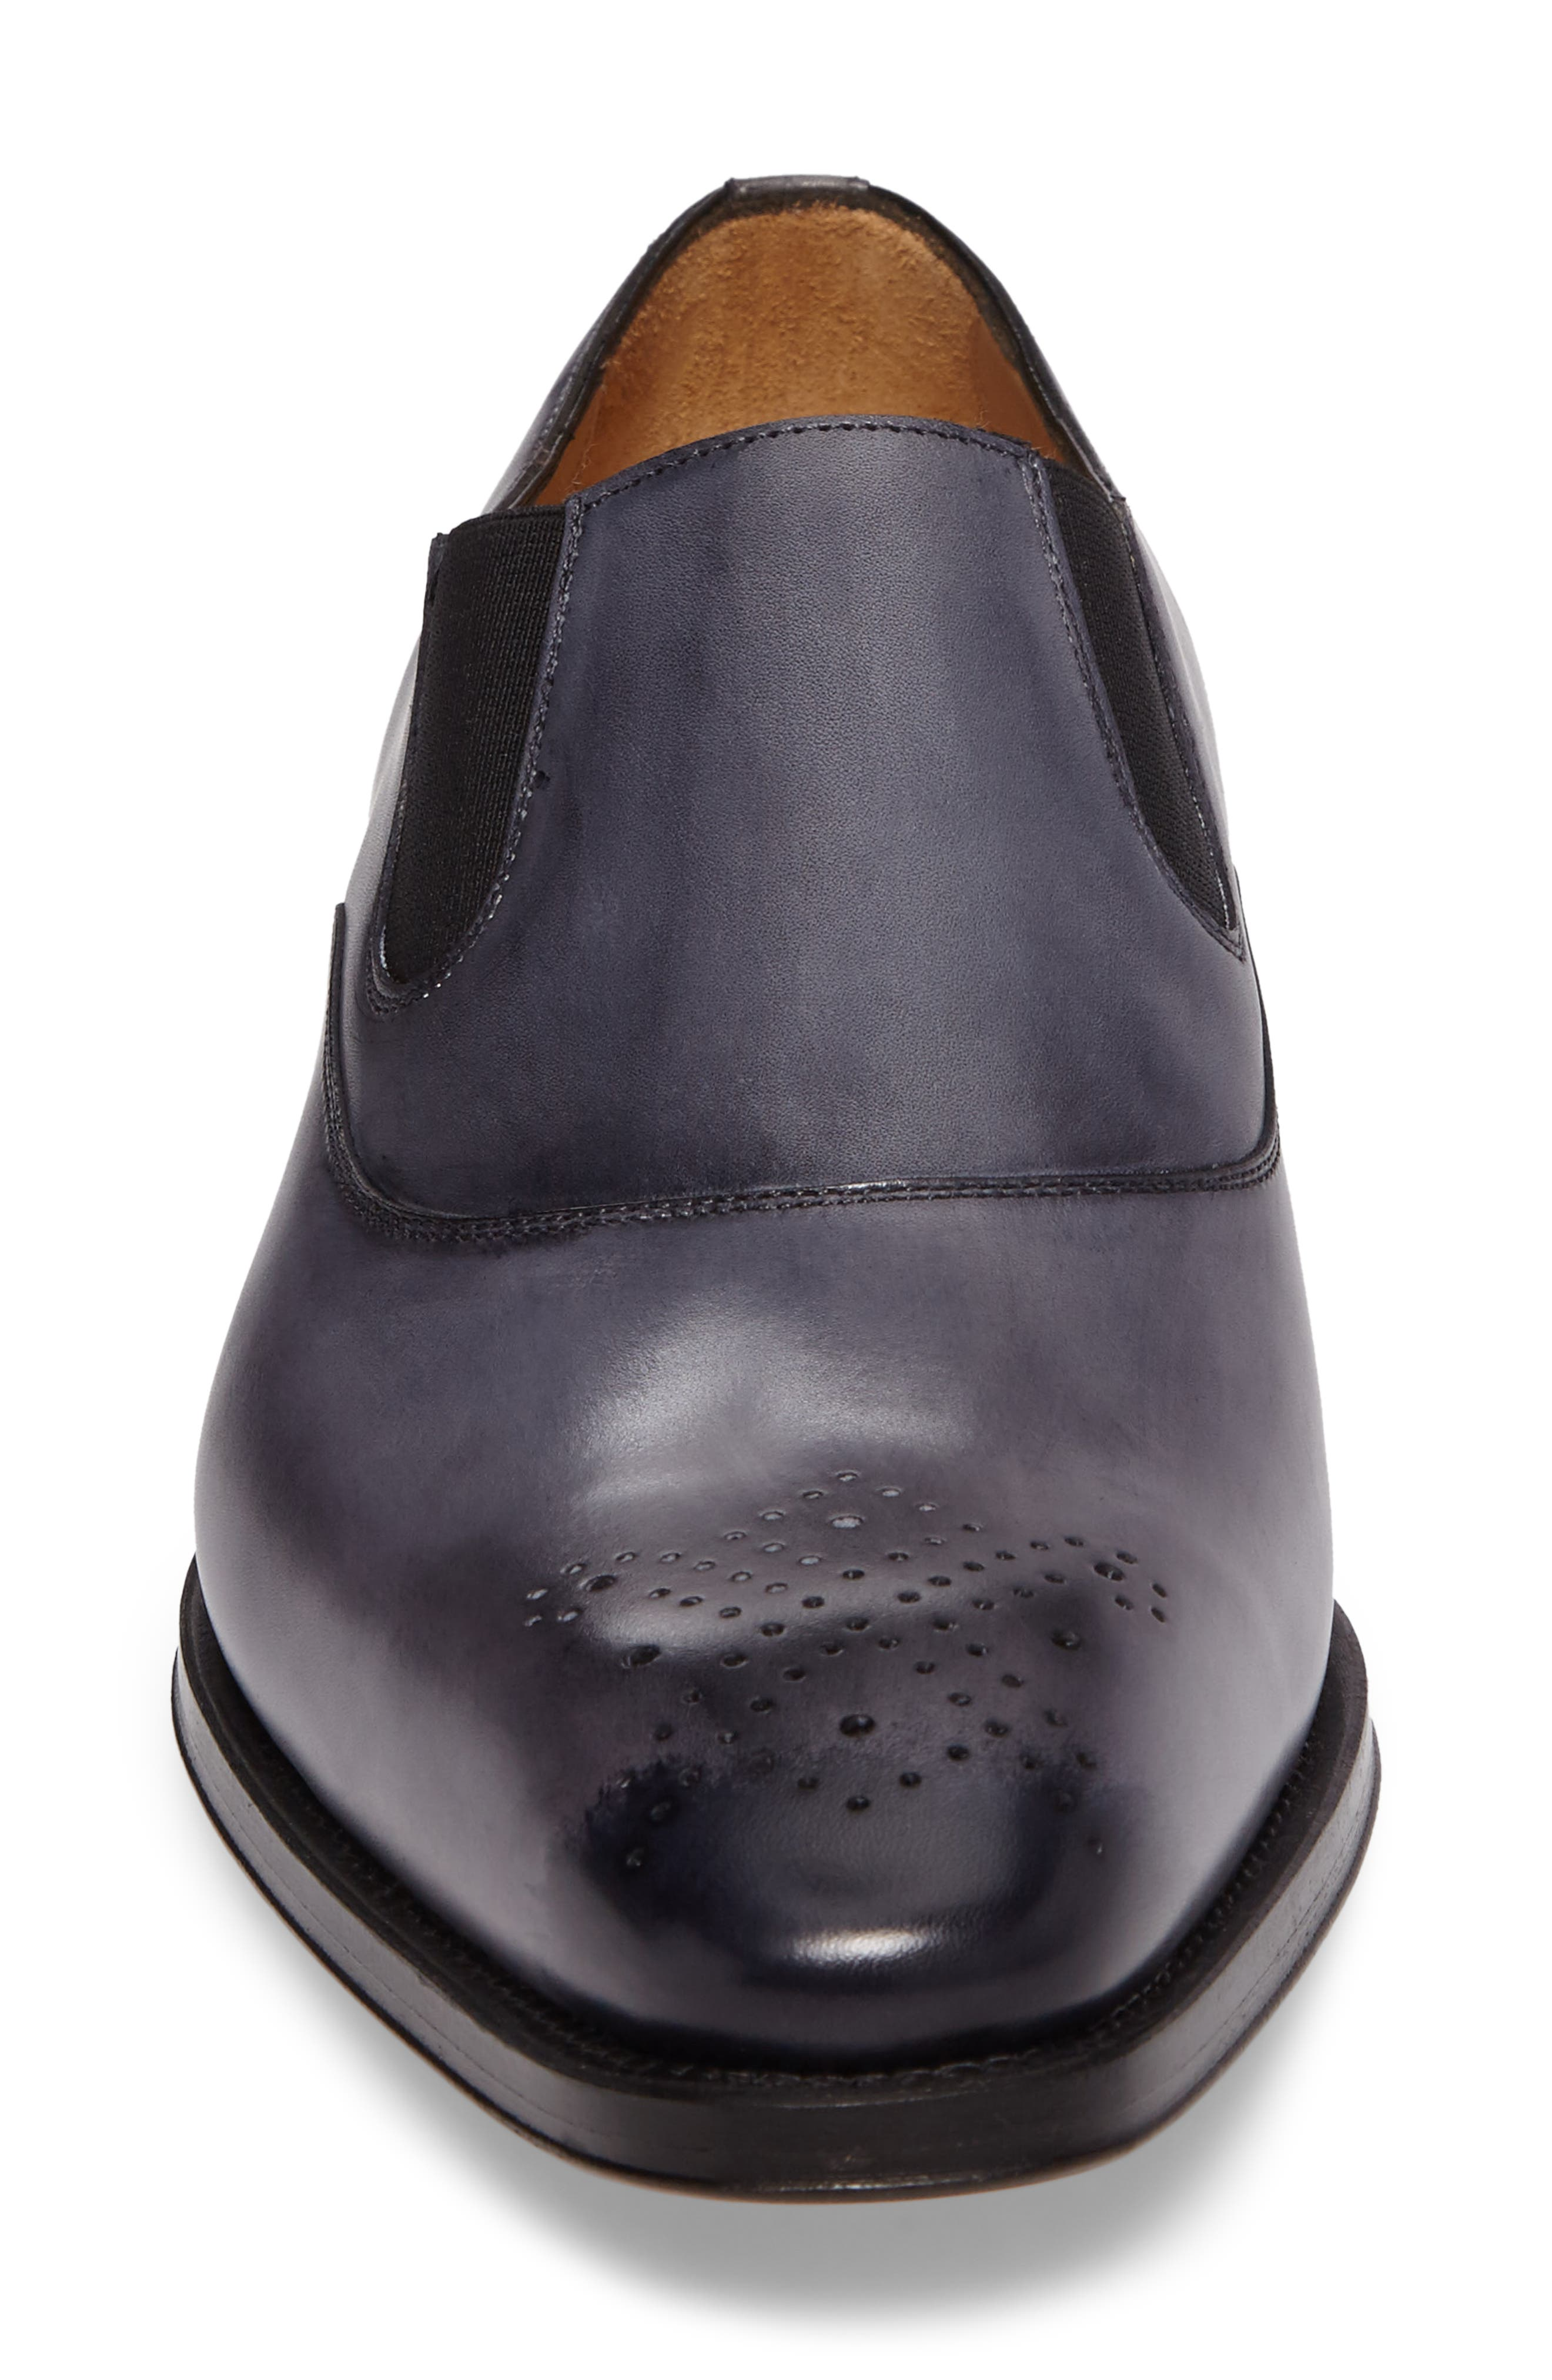 Posadas Venetian Loafer,                             Alternate thumbnail 4, color,                             Grey Leather